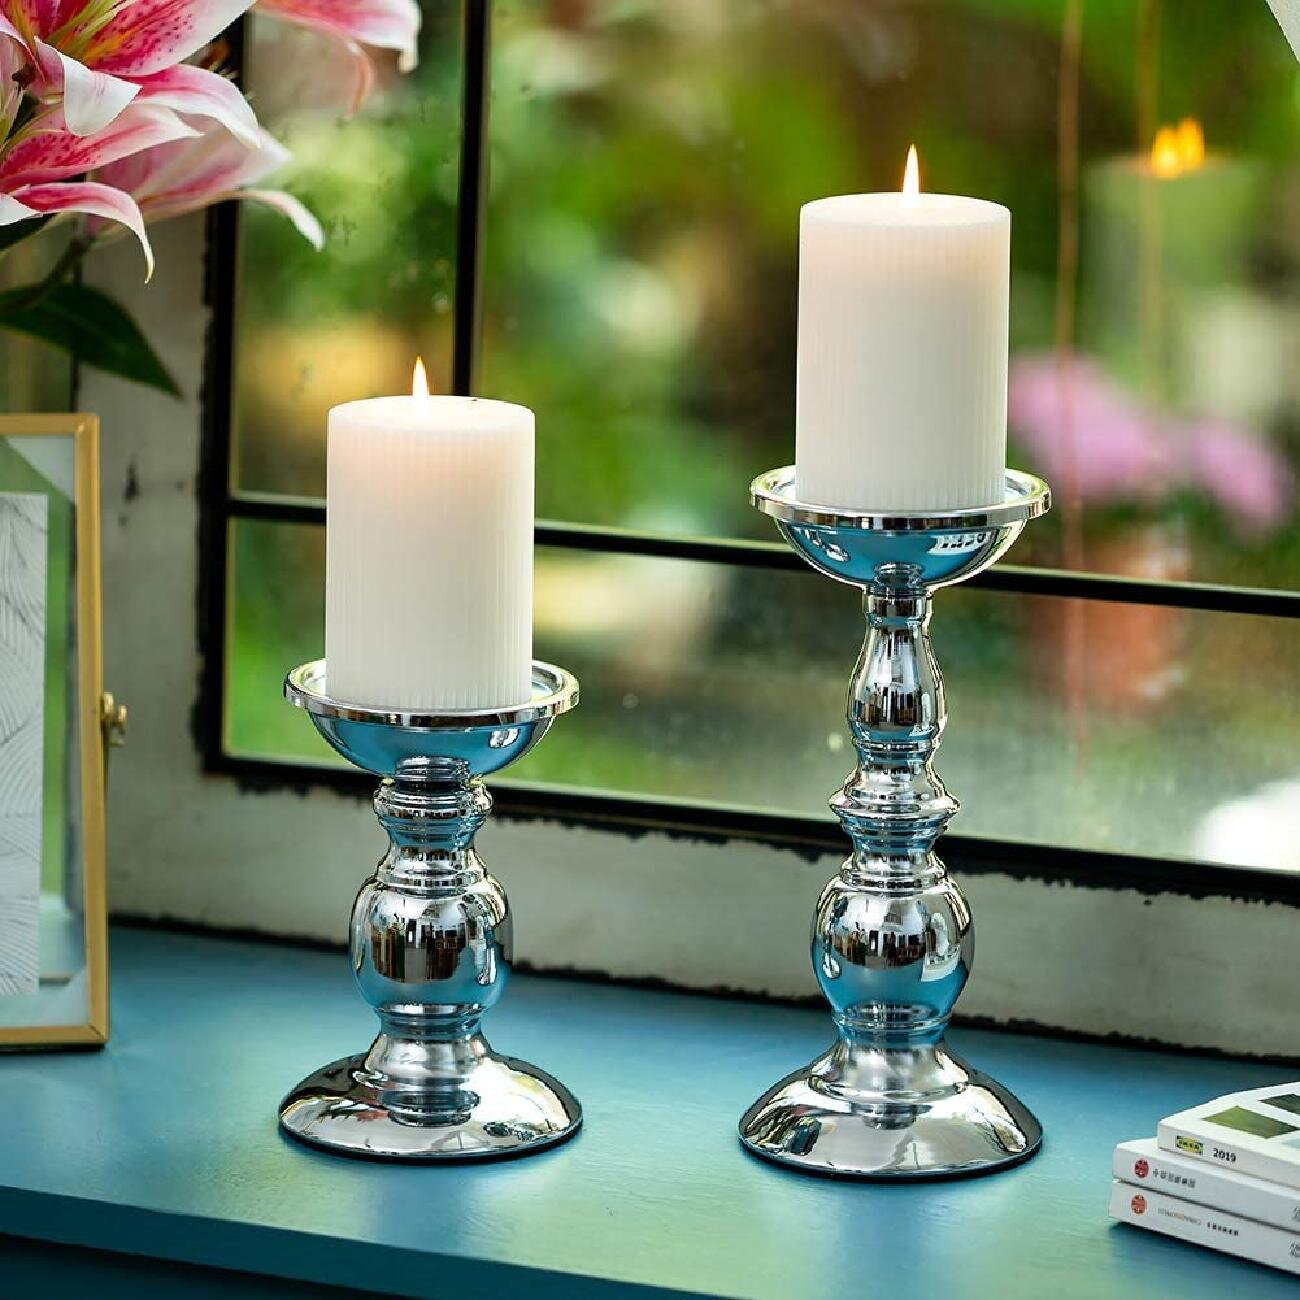 Pillar Candle Holders Metal Candle Holder Ideal For 20 Inches Candles,  Silver Candle Holder For Living Room, Gardens, Spa, Aromatherapy, Incense  Cones, ...